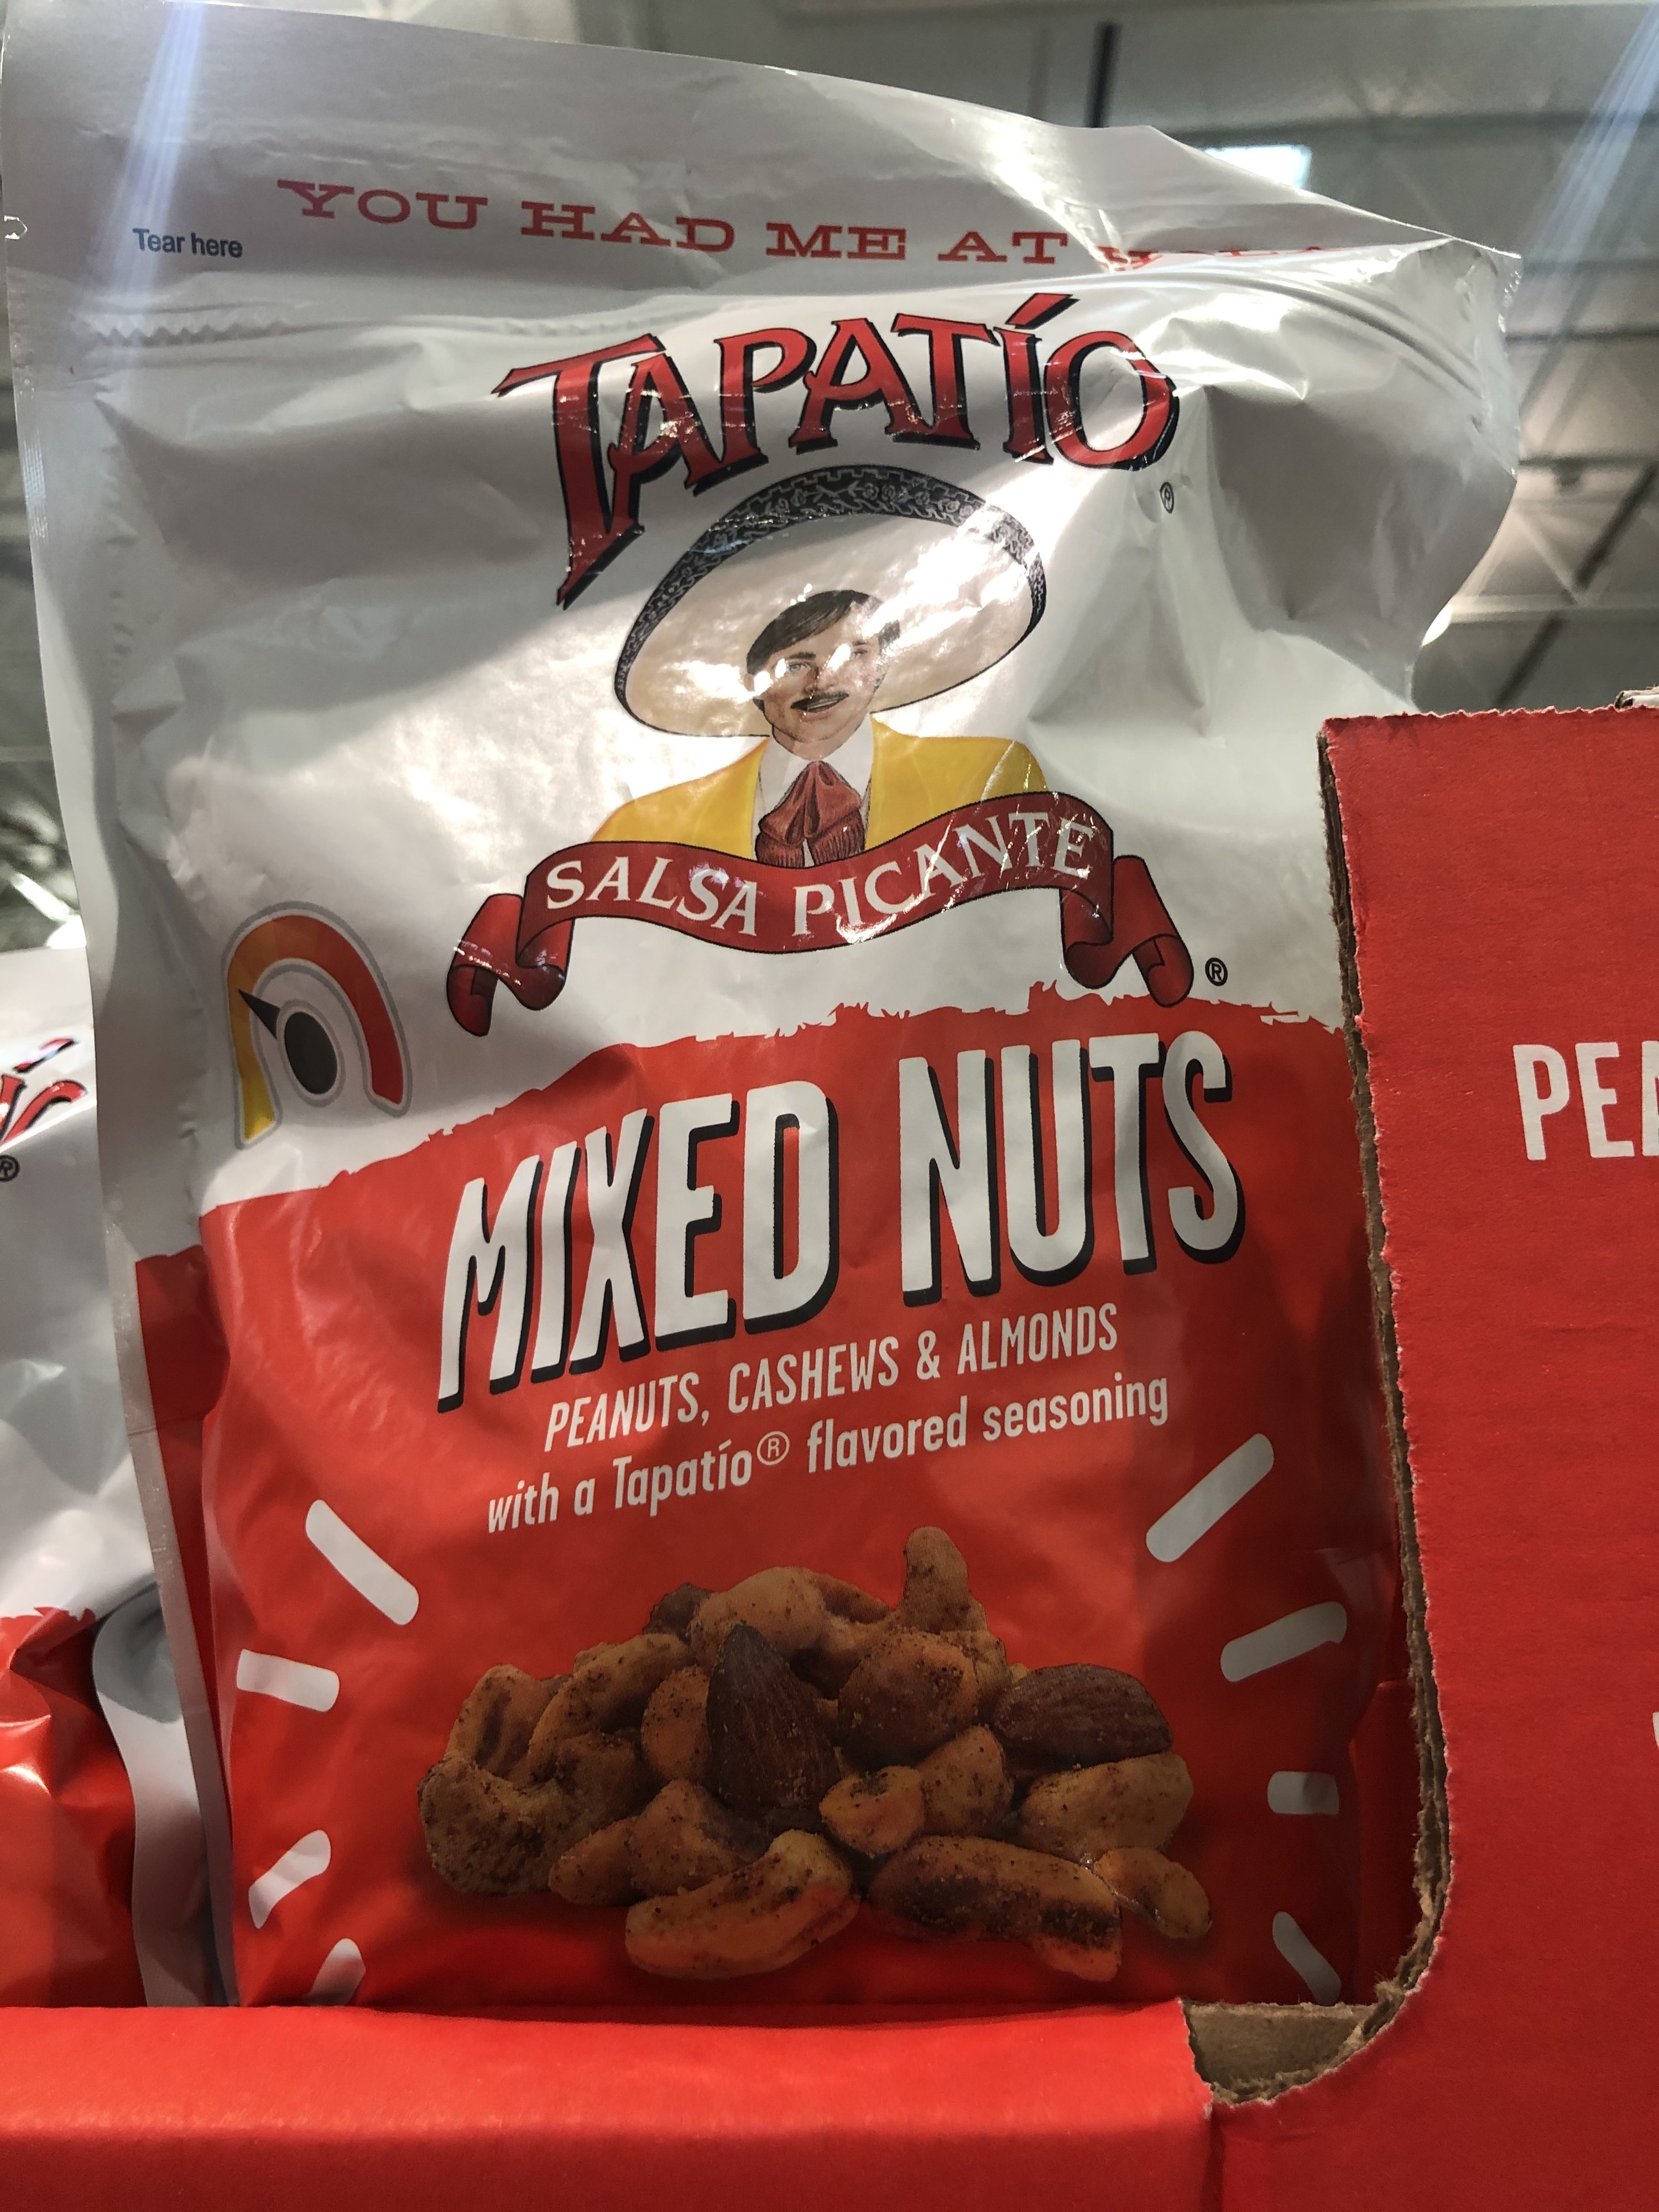 A bag of Tapatio mixed nuts